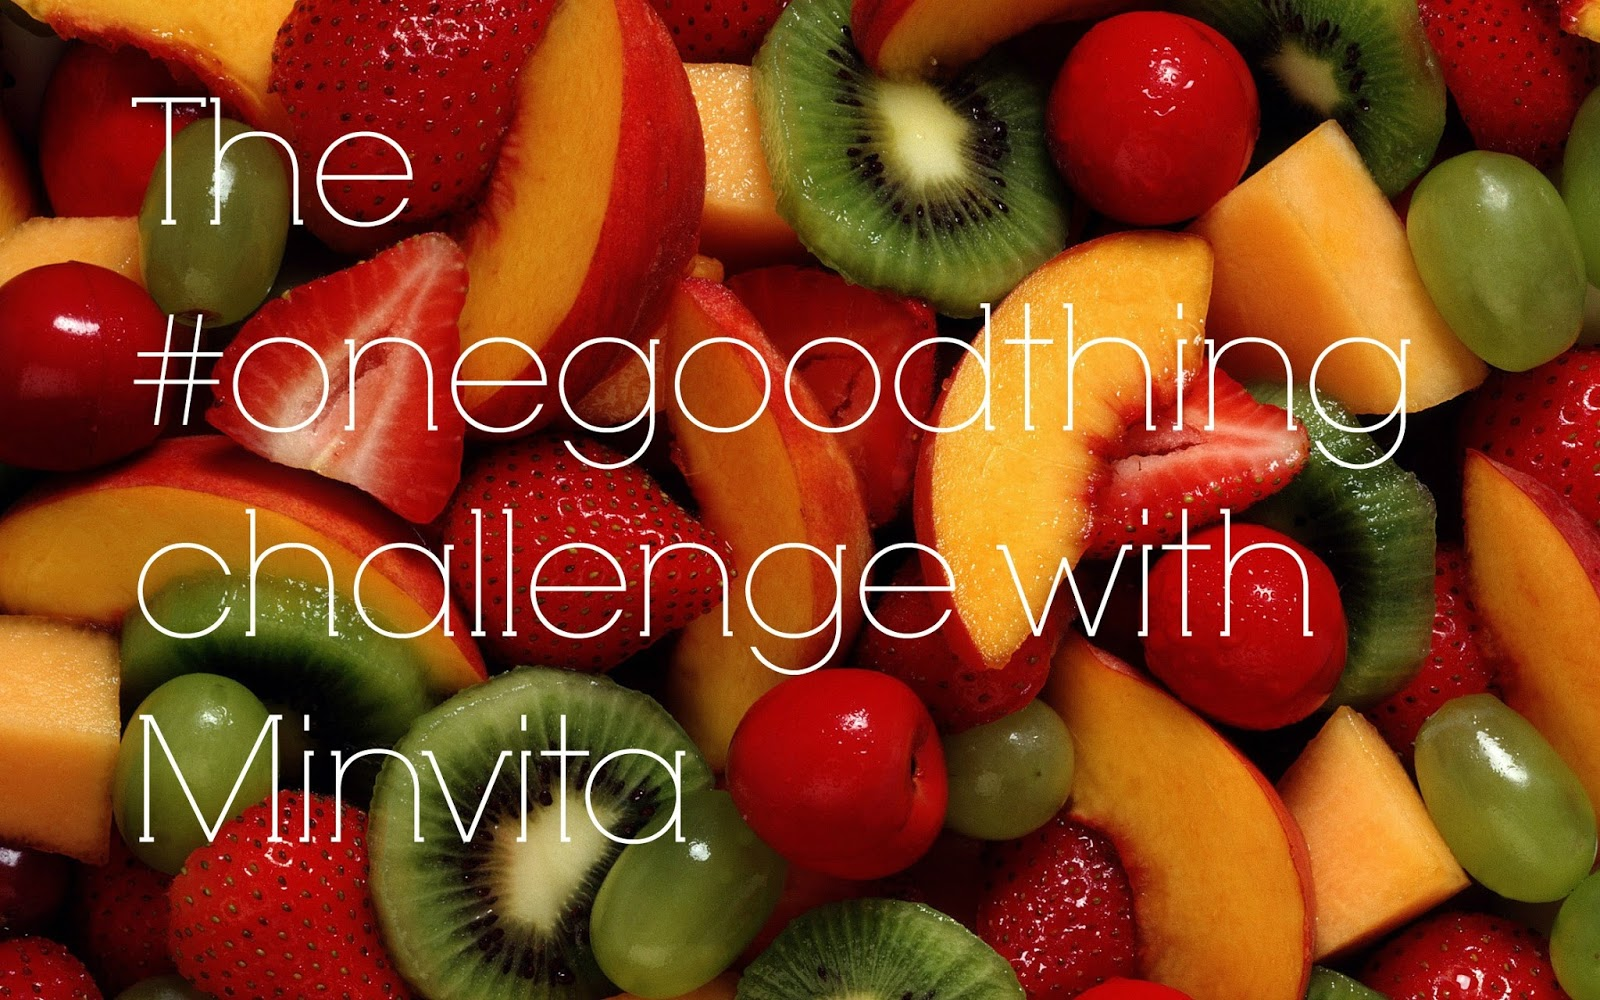 Taking the One good thing challenge with Minvita